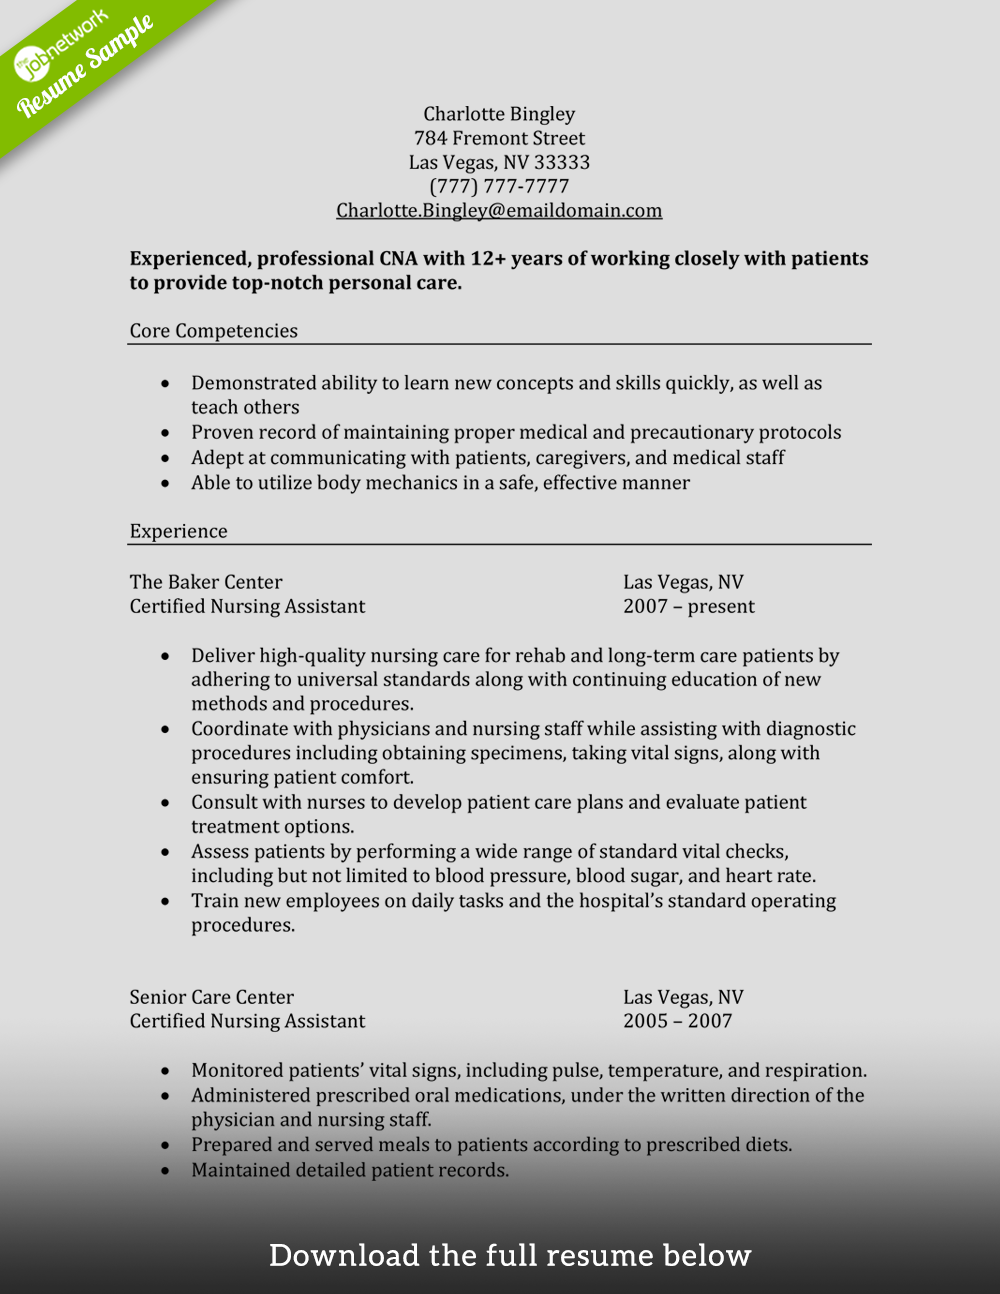 How to Write a Perfect CNA Resume (Examples Included)